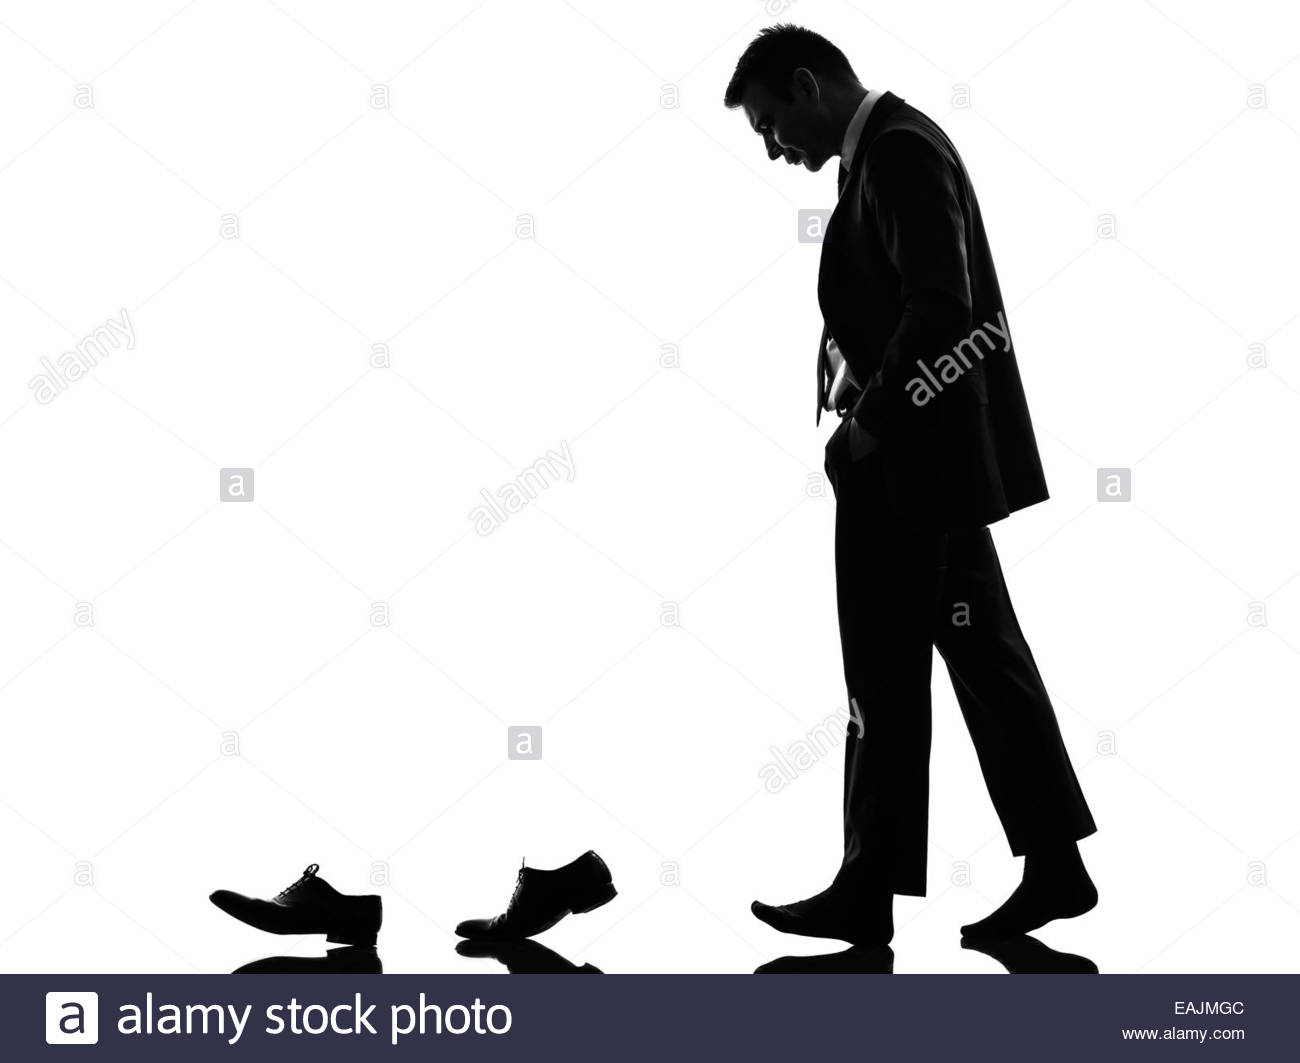 1300x1063 One Caucasian Business Man Walking Behind His Shoes In Silhouette